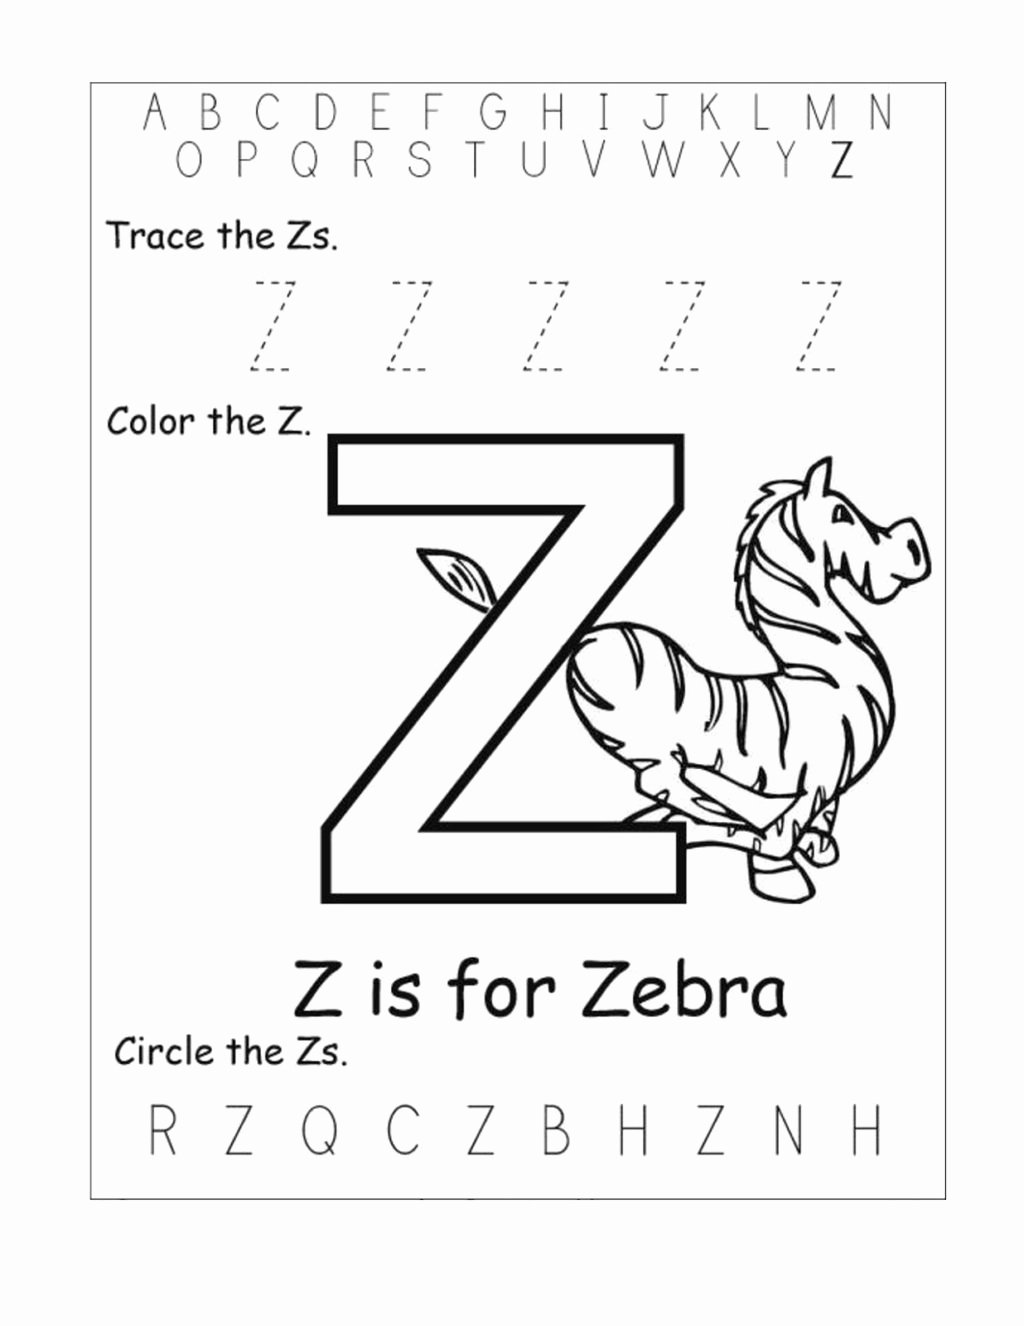 Letter Z Worksheets for Preschoolers Lovely Worksheet Letter Z Worksheets Kids Learning Activity